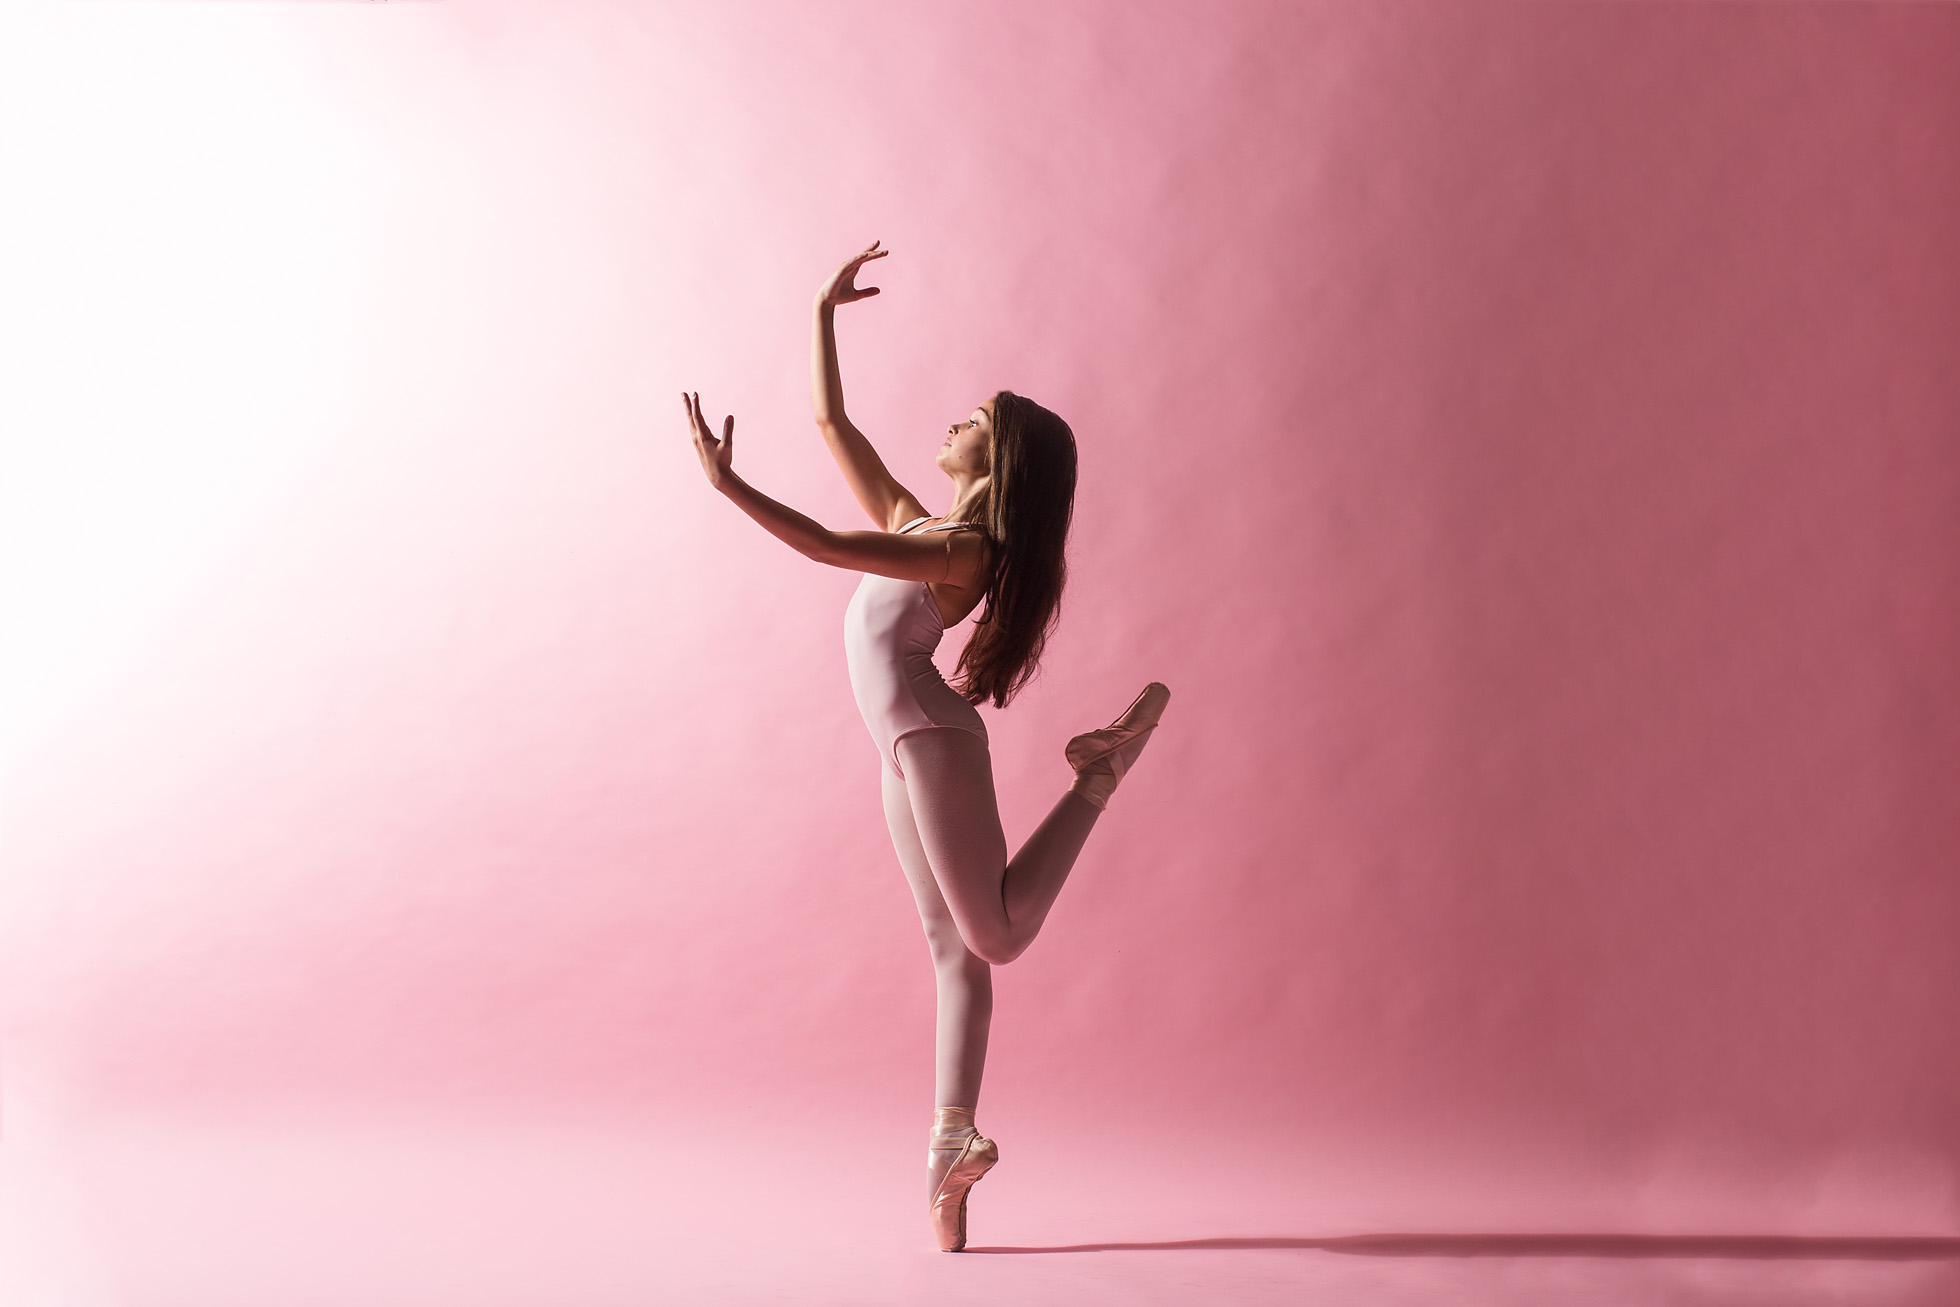 Ballet photography by Faye Sevel